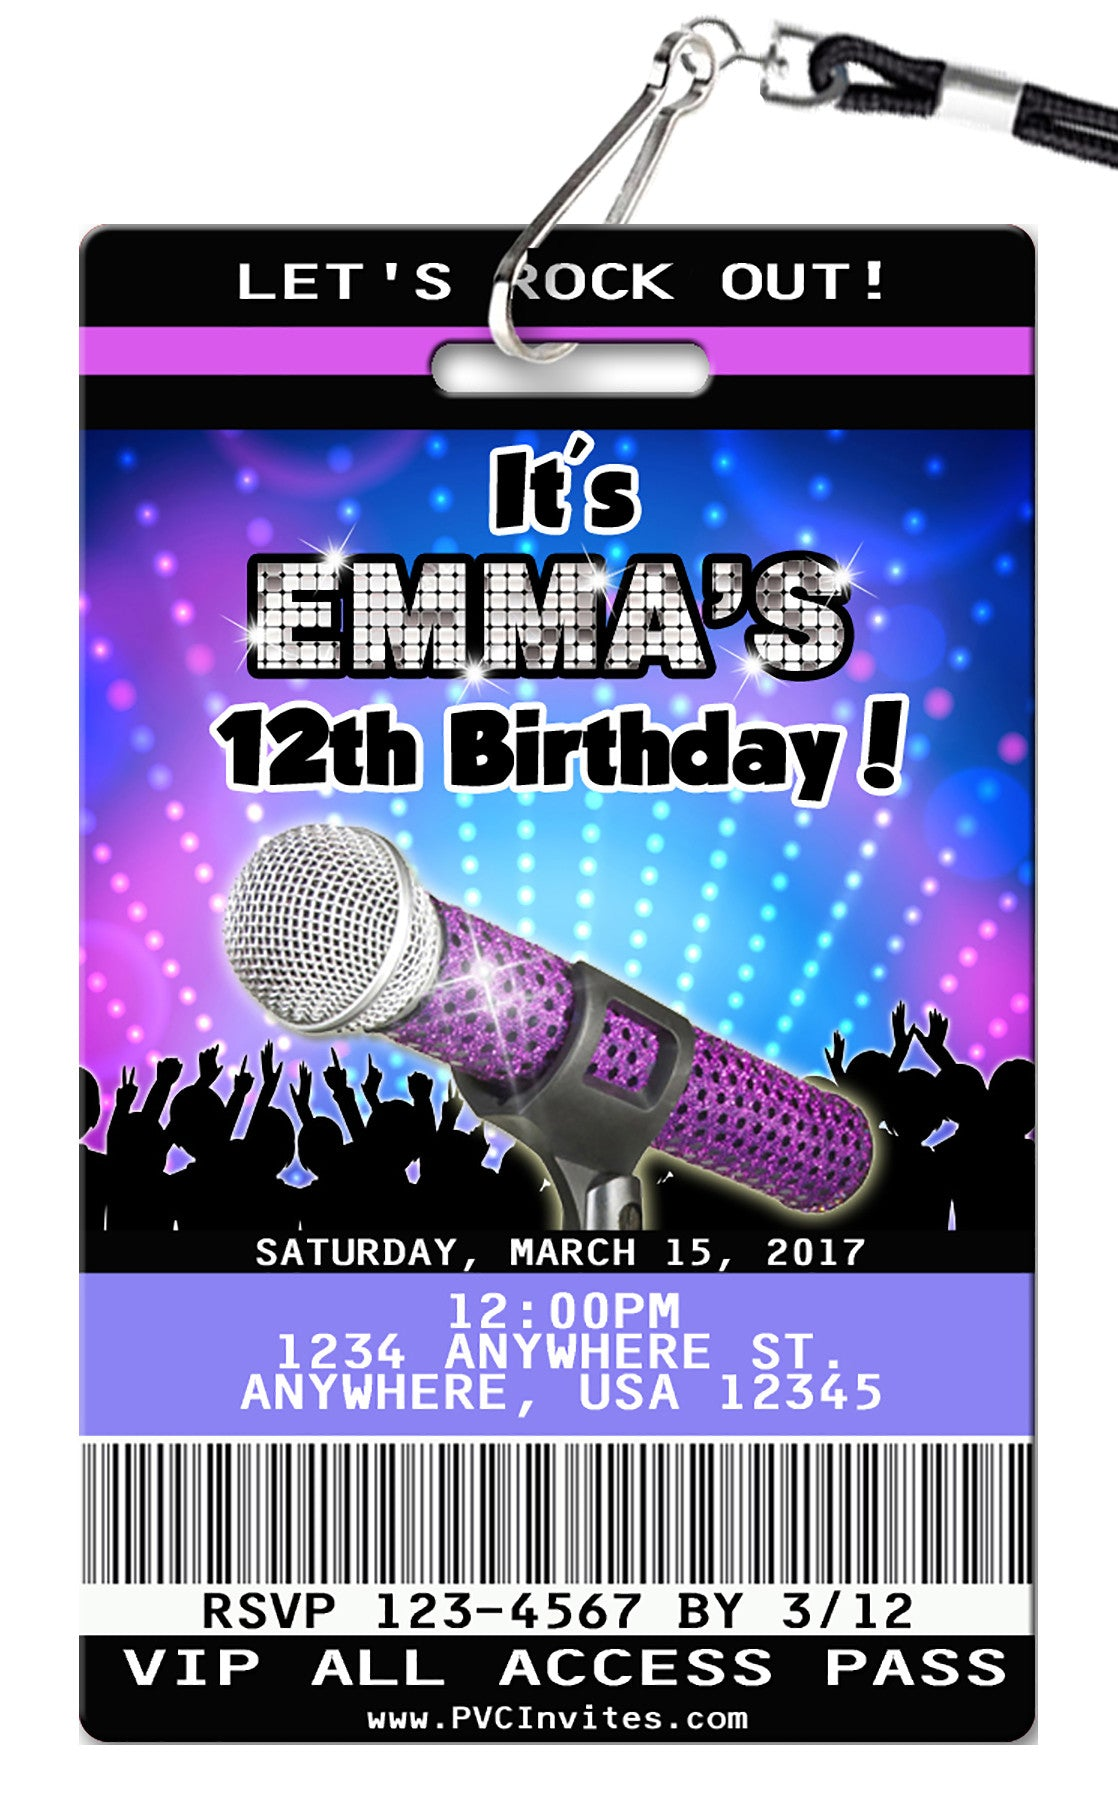 Karaoke Birthday Invitations - PVC Invites - VIP Birthday Invitations